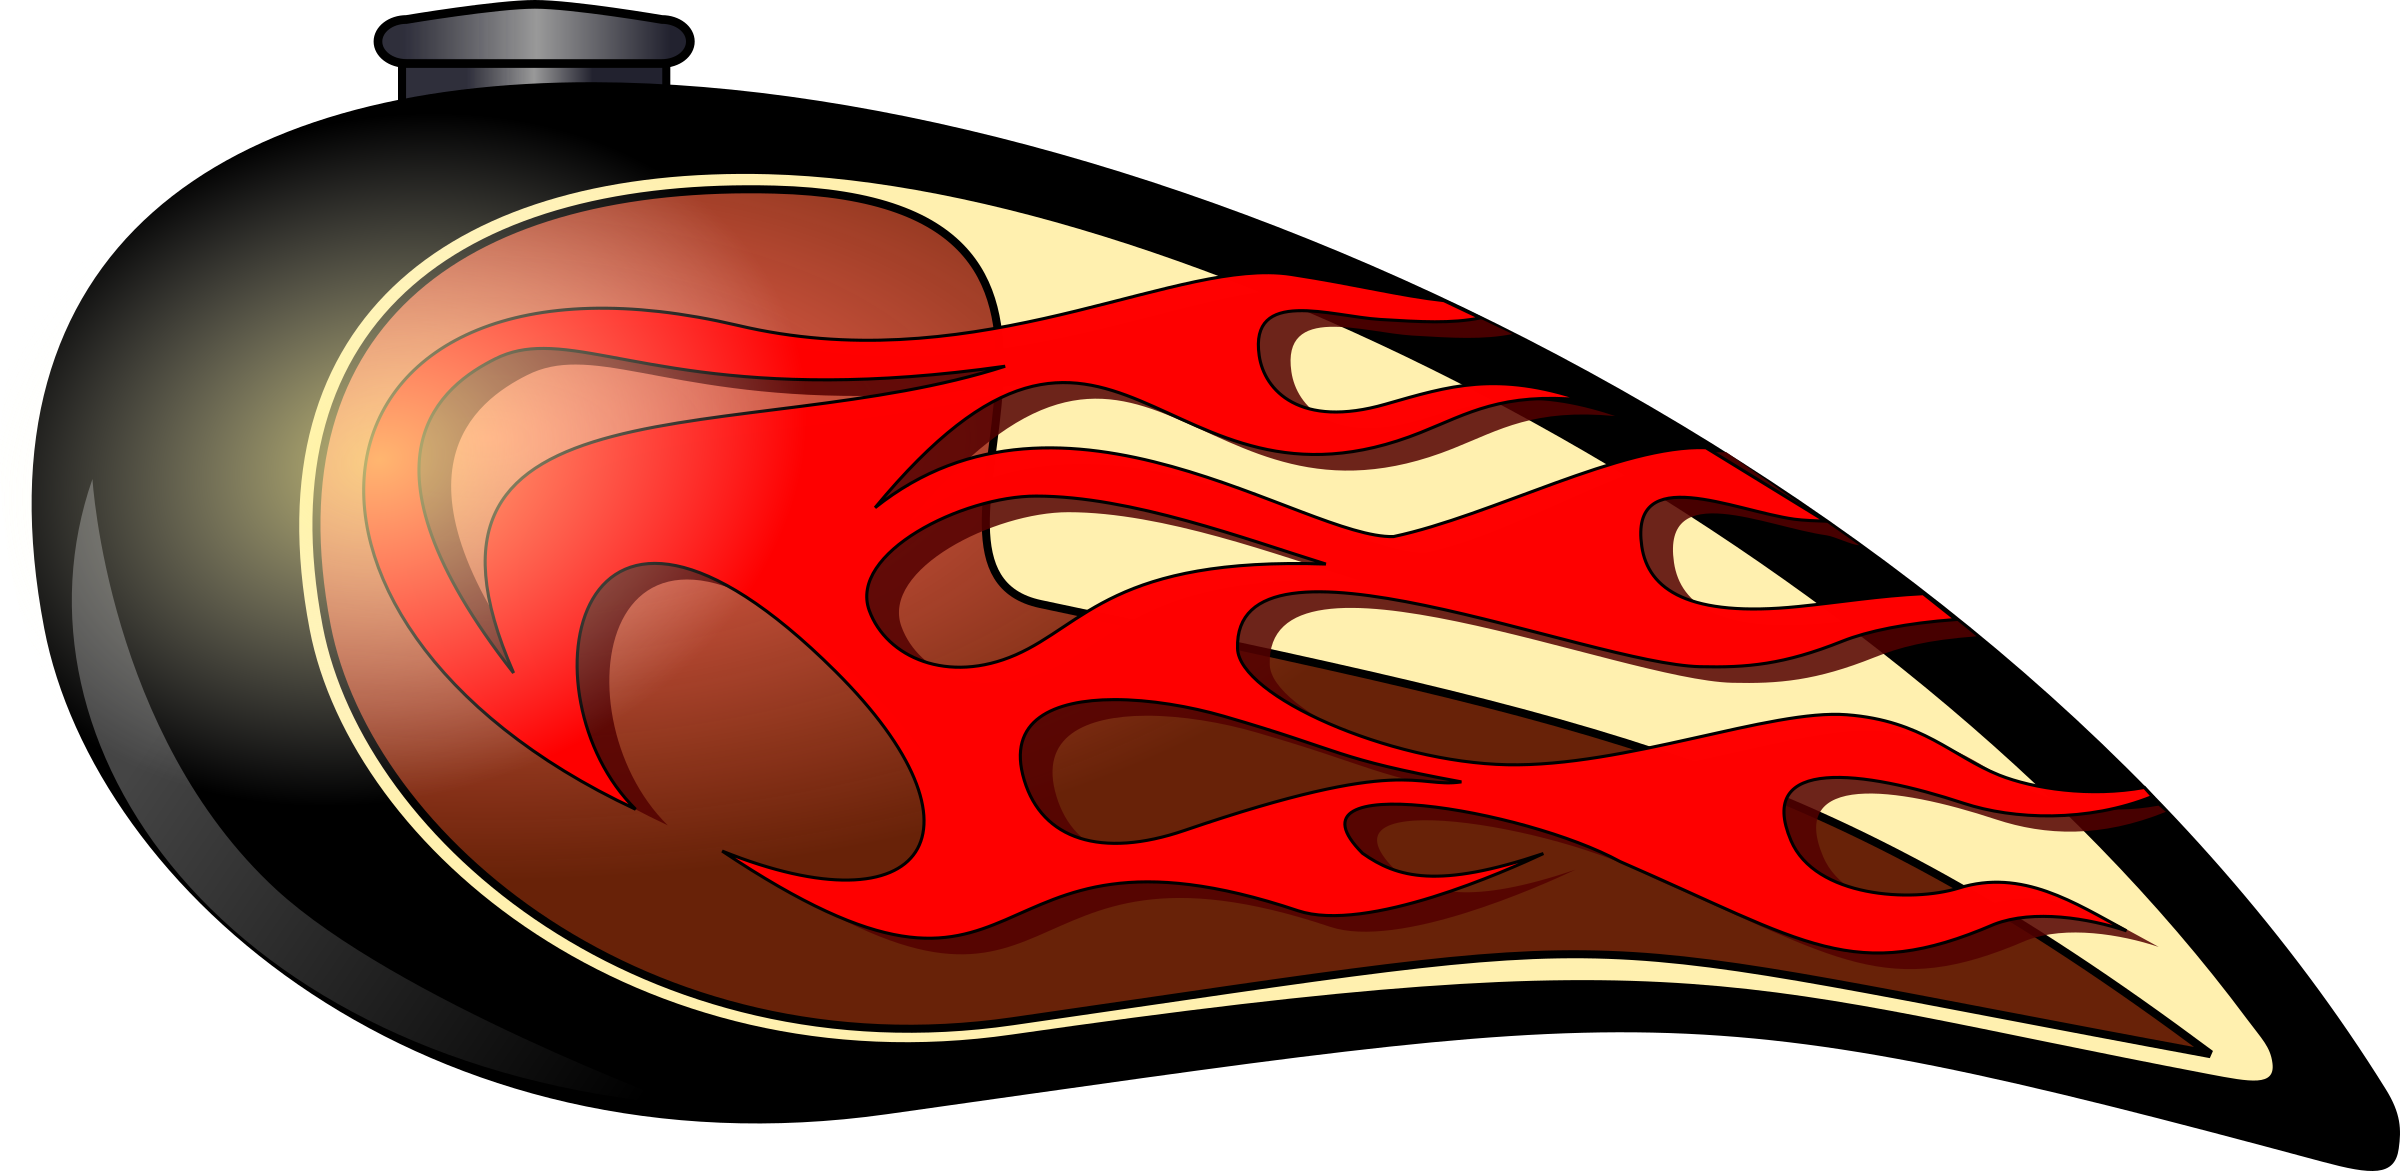 Flames clipart motorcycle. Chopper tank big image